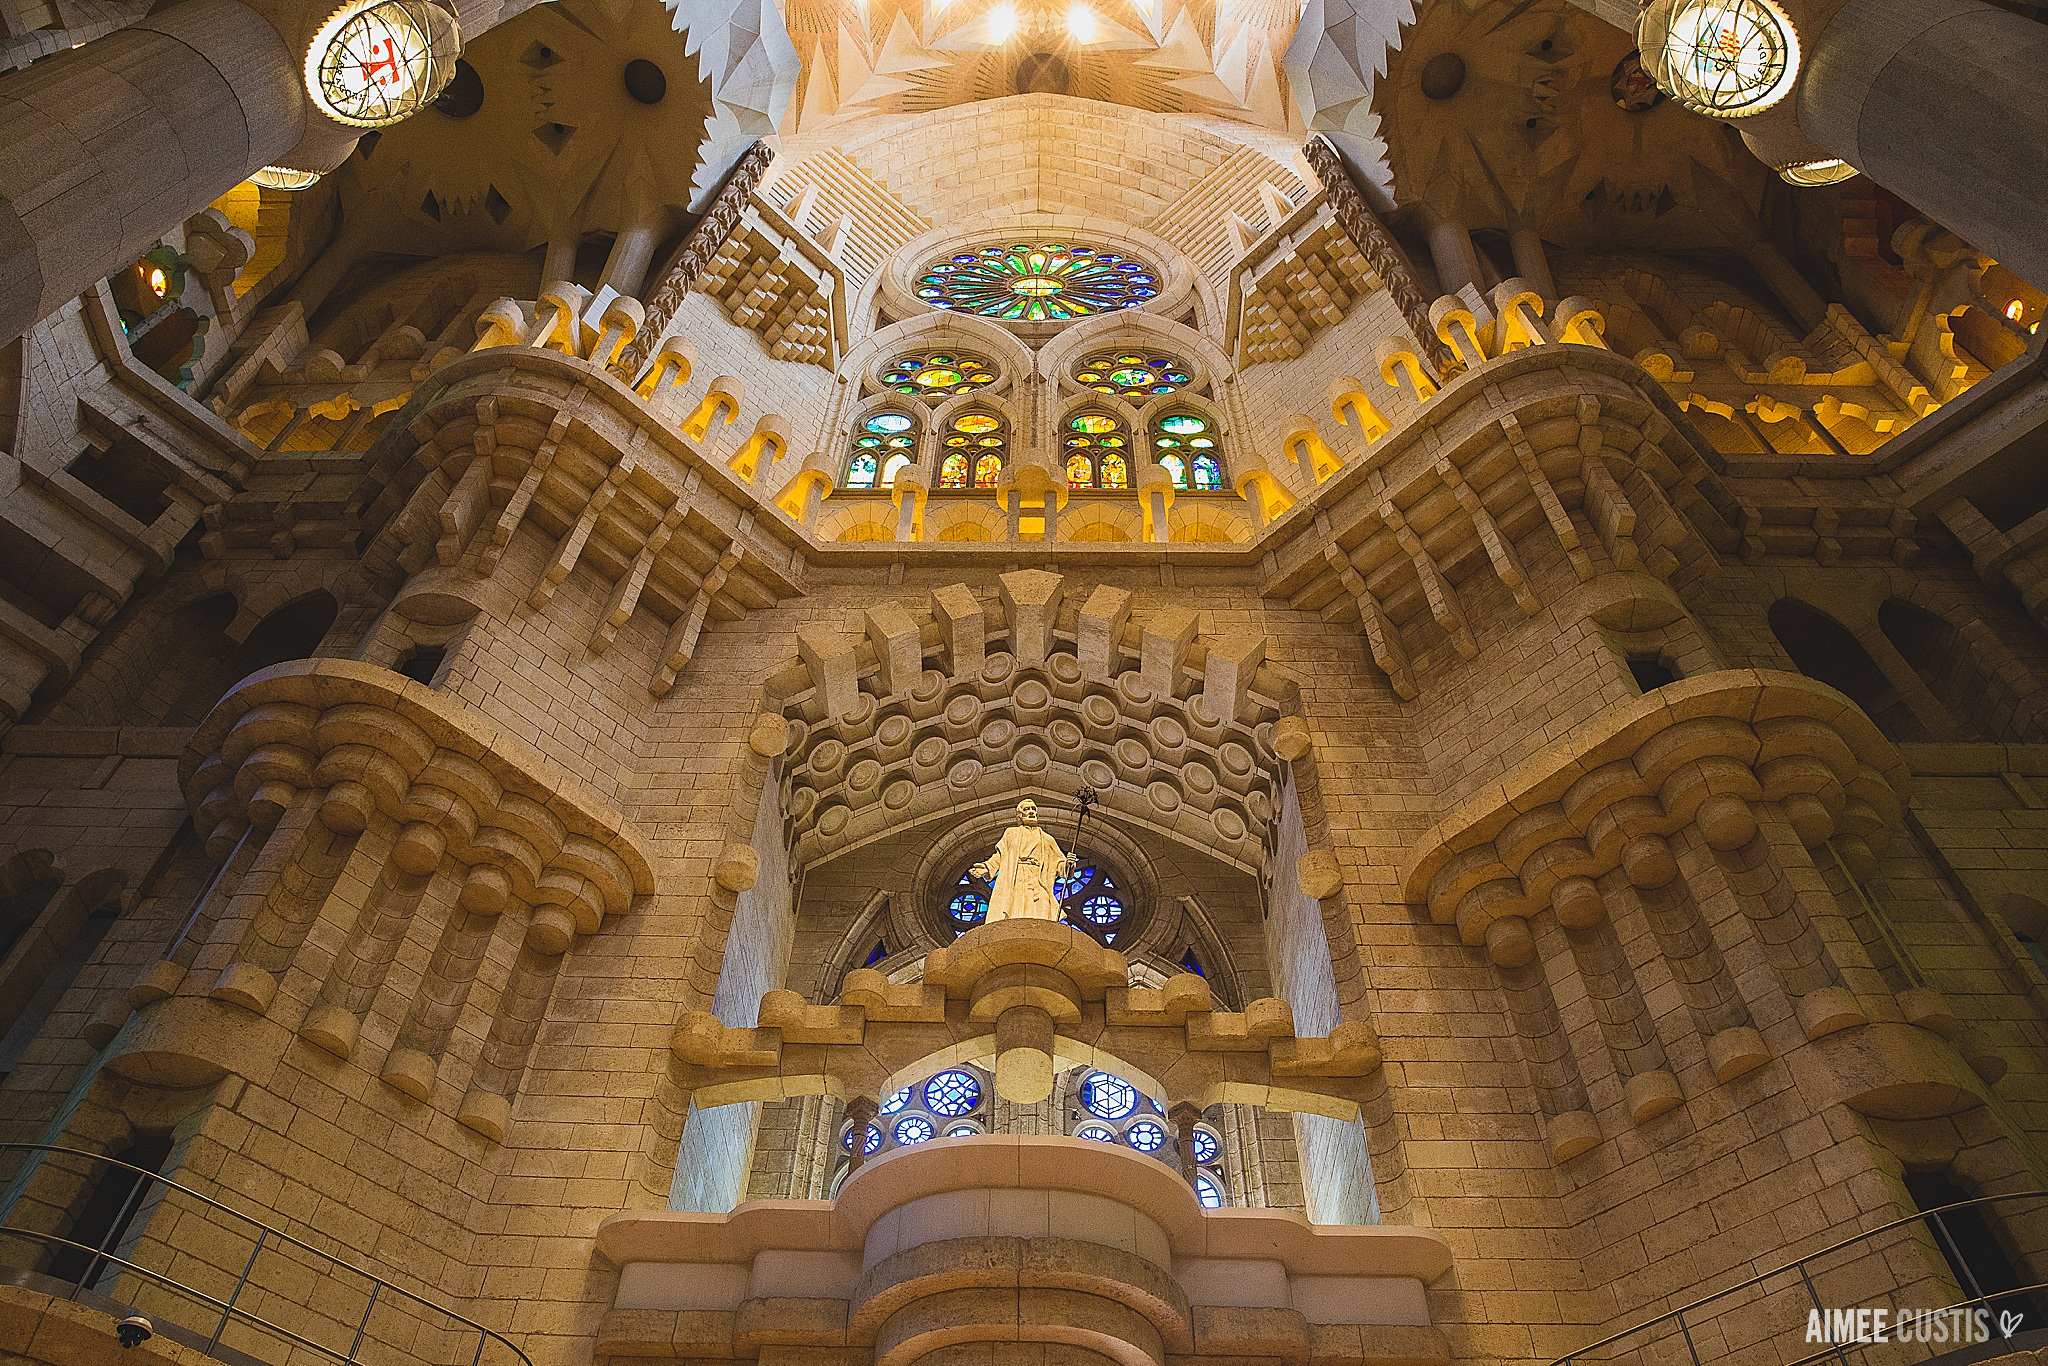 Some of the more conventional interiors of the Sagrada Familia. I didn't have the right lens with me to do the main interior space justice, in my opinion!